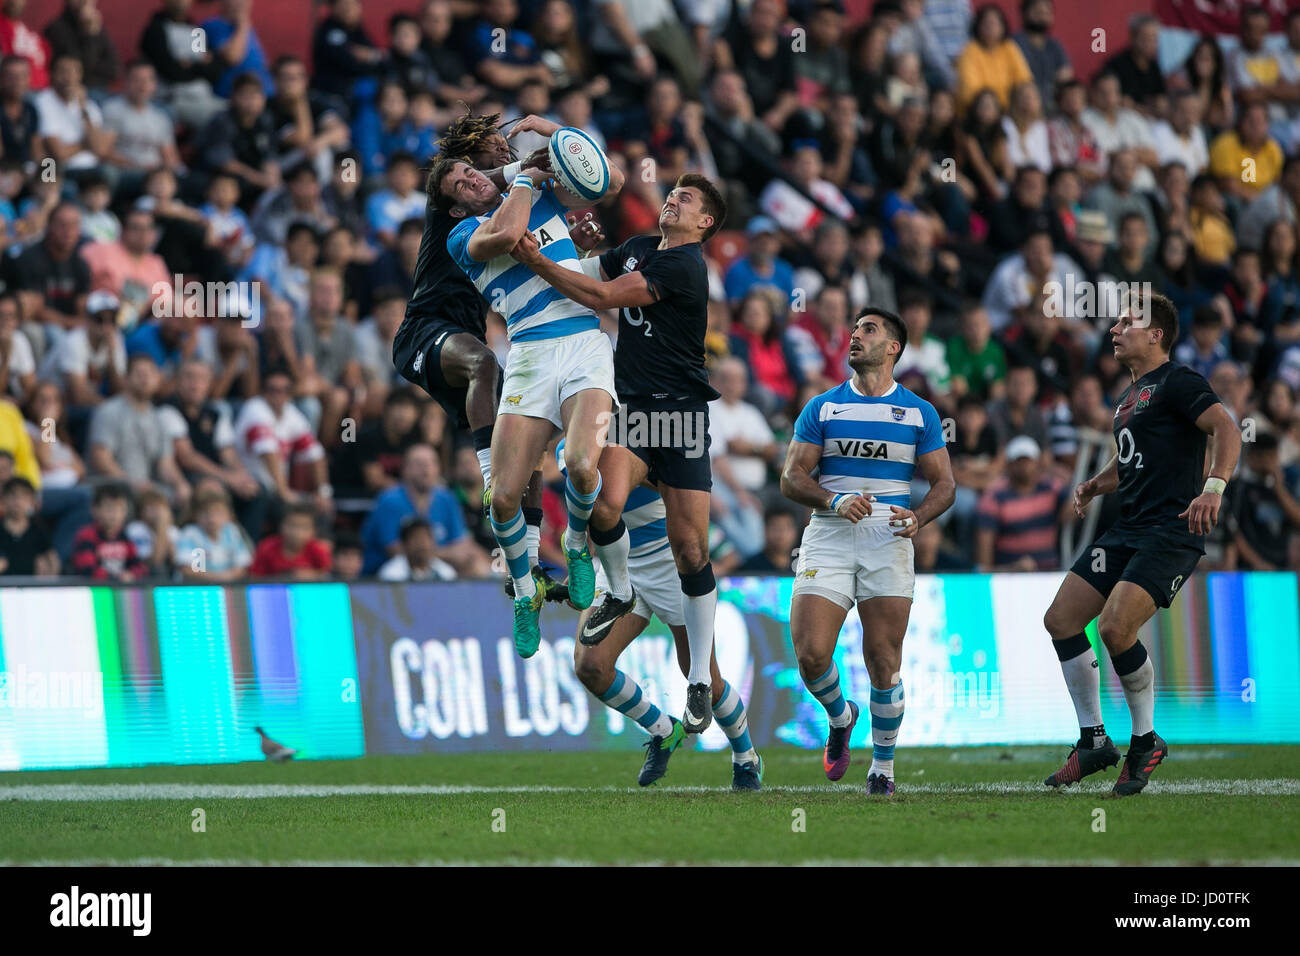 England's Marland Yarde (L, back) in action against Argentina's Emiliano Boffelli during a firendly match - Stock Image